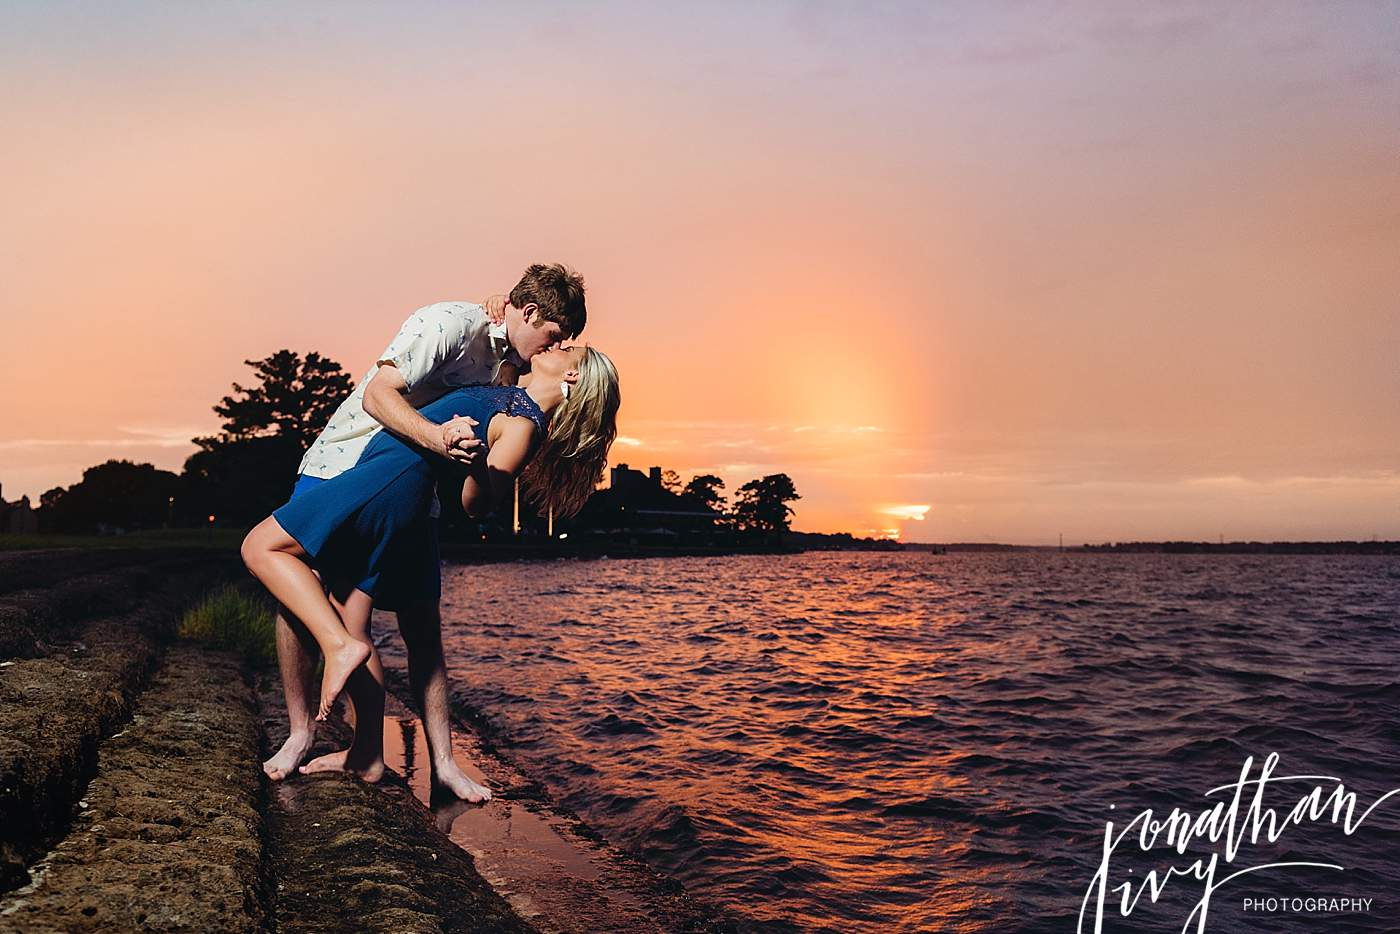 Houston Commercial Photographer,Lake Conroe Engagement Photos,Lake Conroe Engagements,Subscription Box,The Pink Envelope,Unboxing,Walden Yacht Club,Walden Yacht Club Engagement Photos,